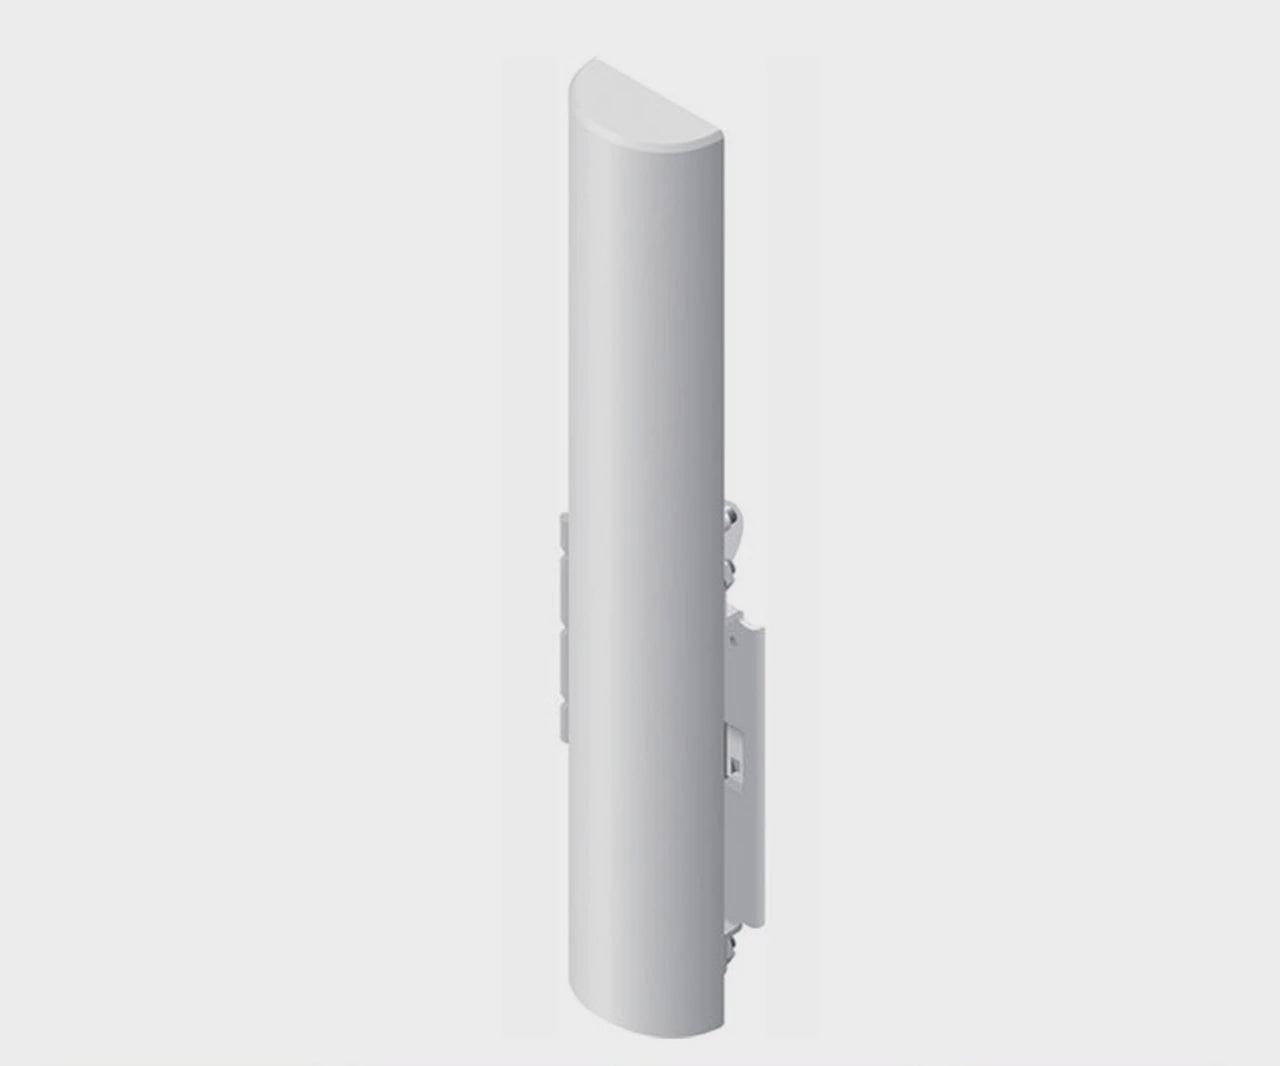 Ubiquiti AirMax Multipoint AM-5G16-120